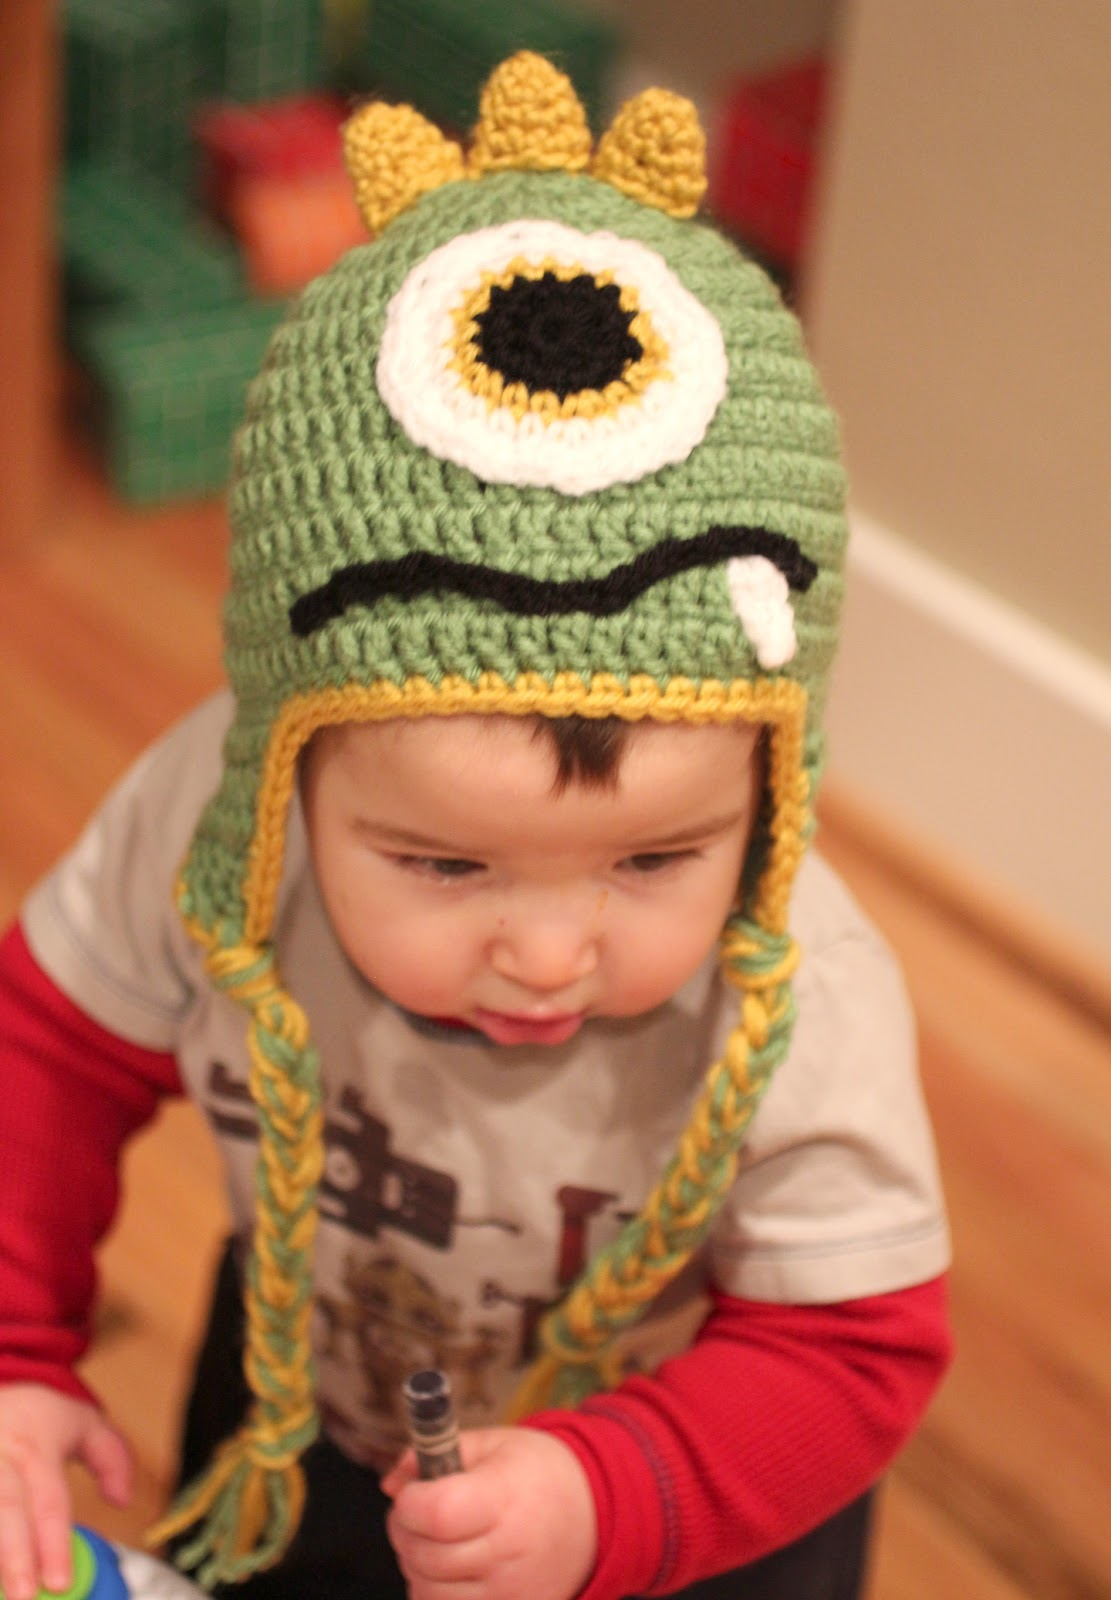 Crochet Monster Hats - Repeat Crafter Me